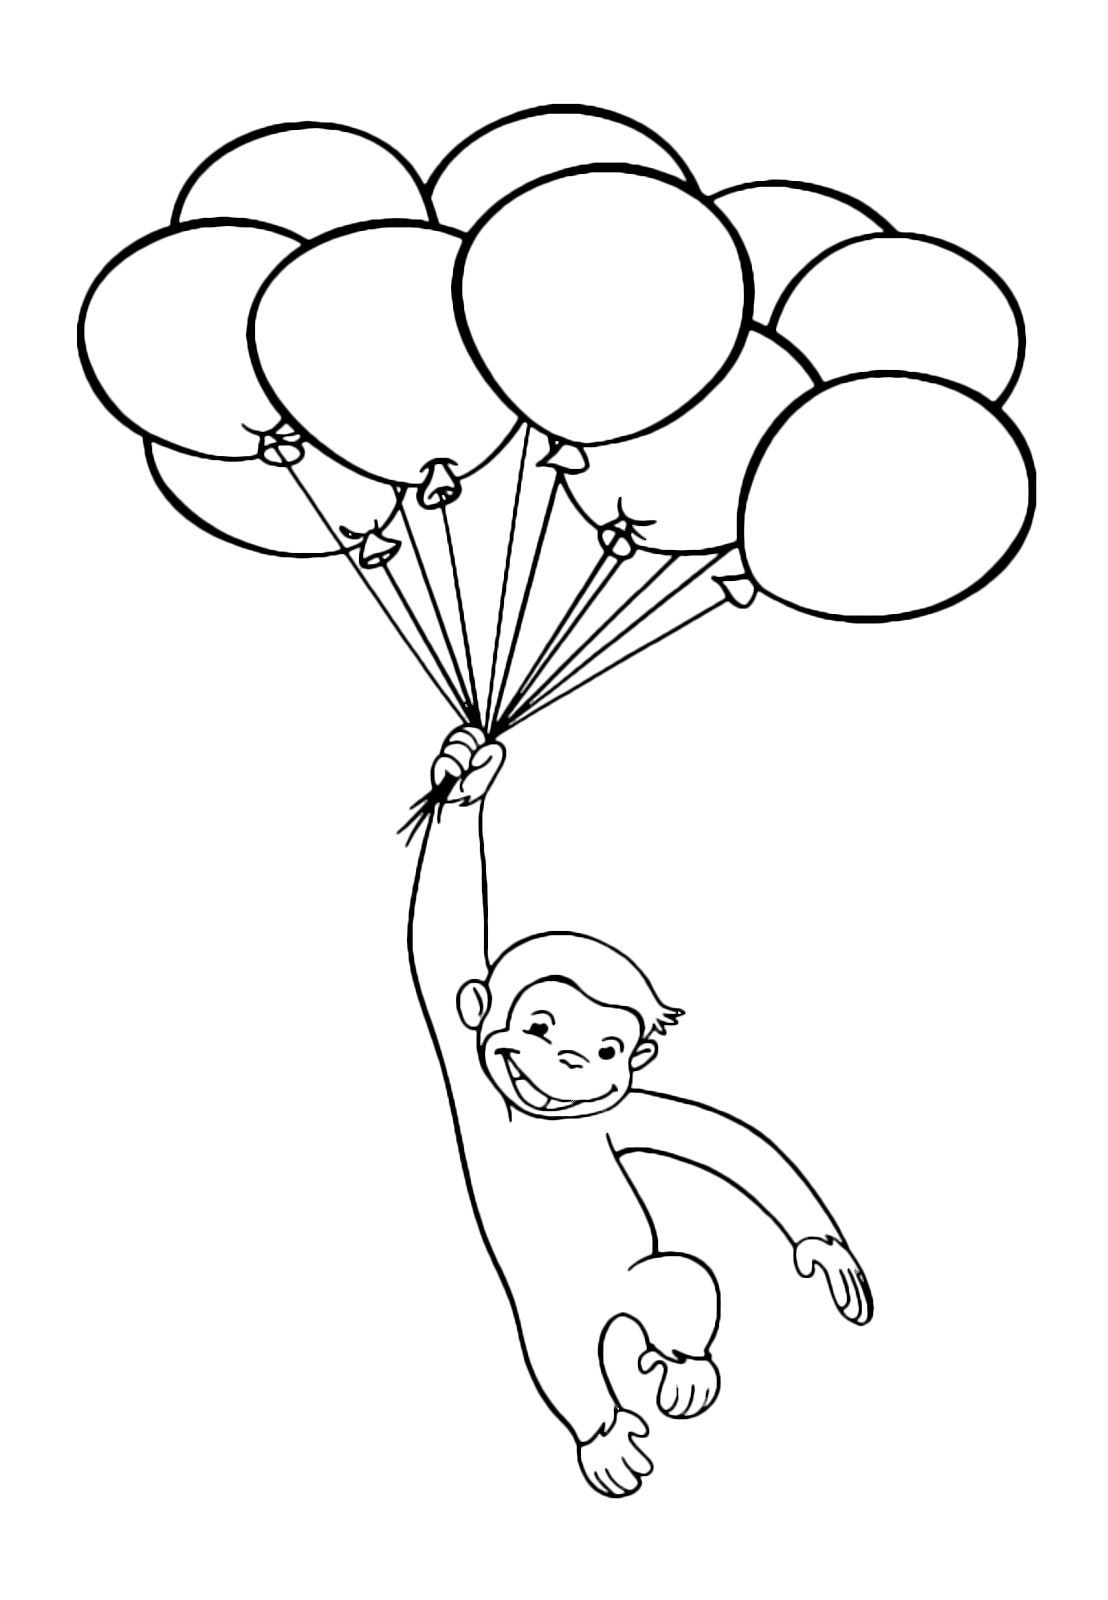 Curious George - George fly attached to balloons